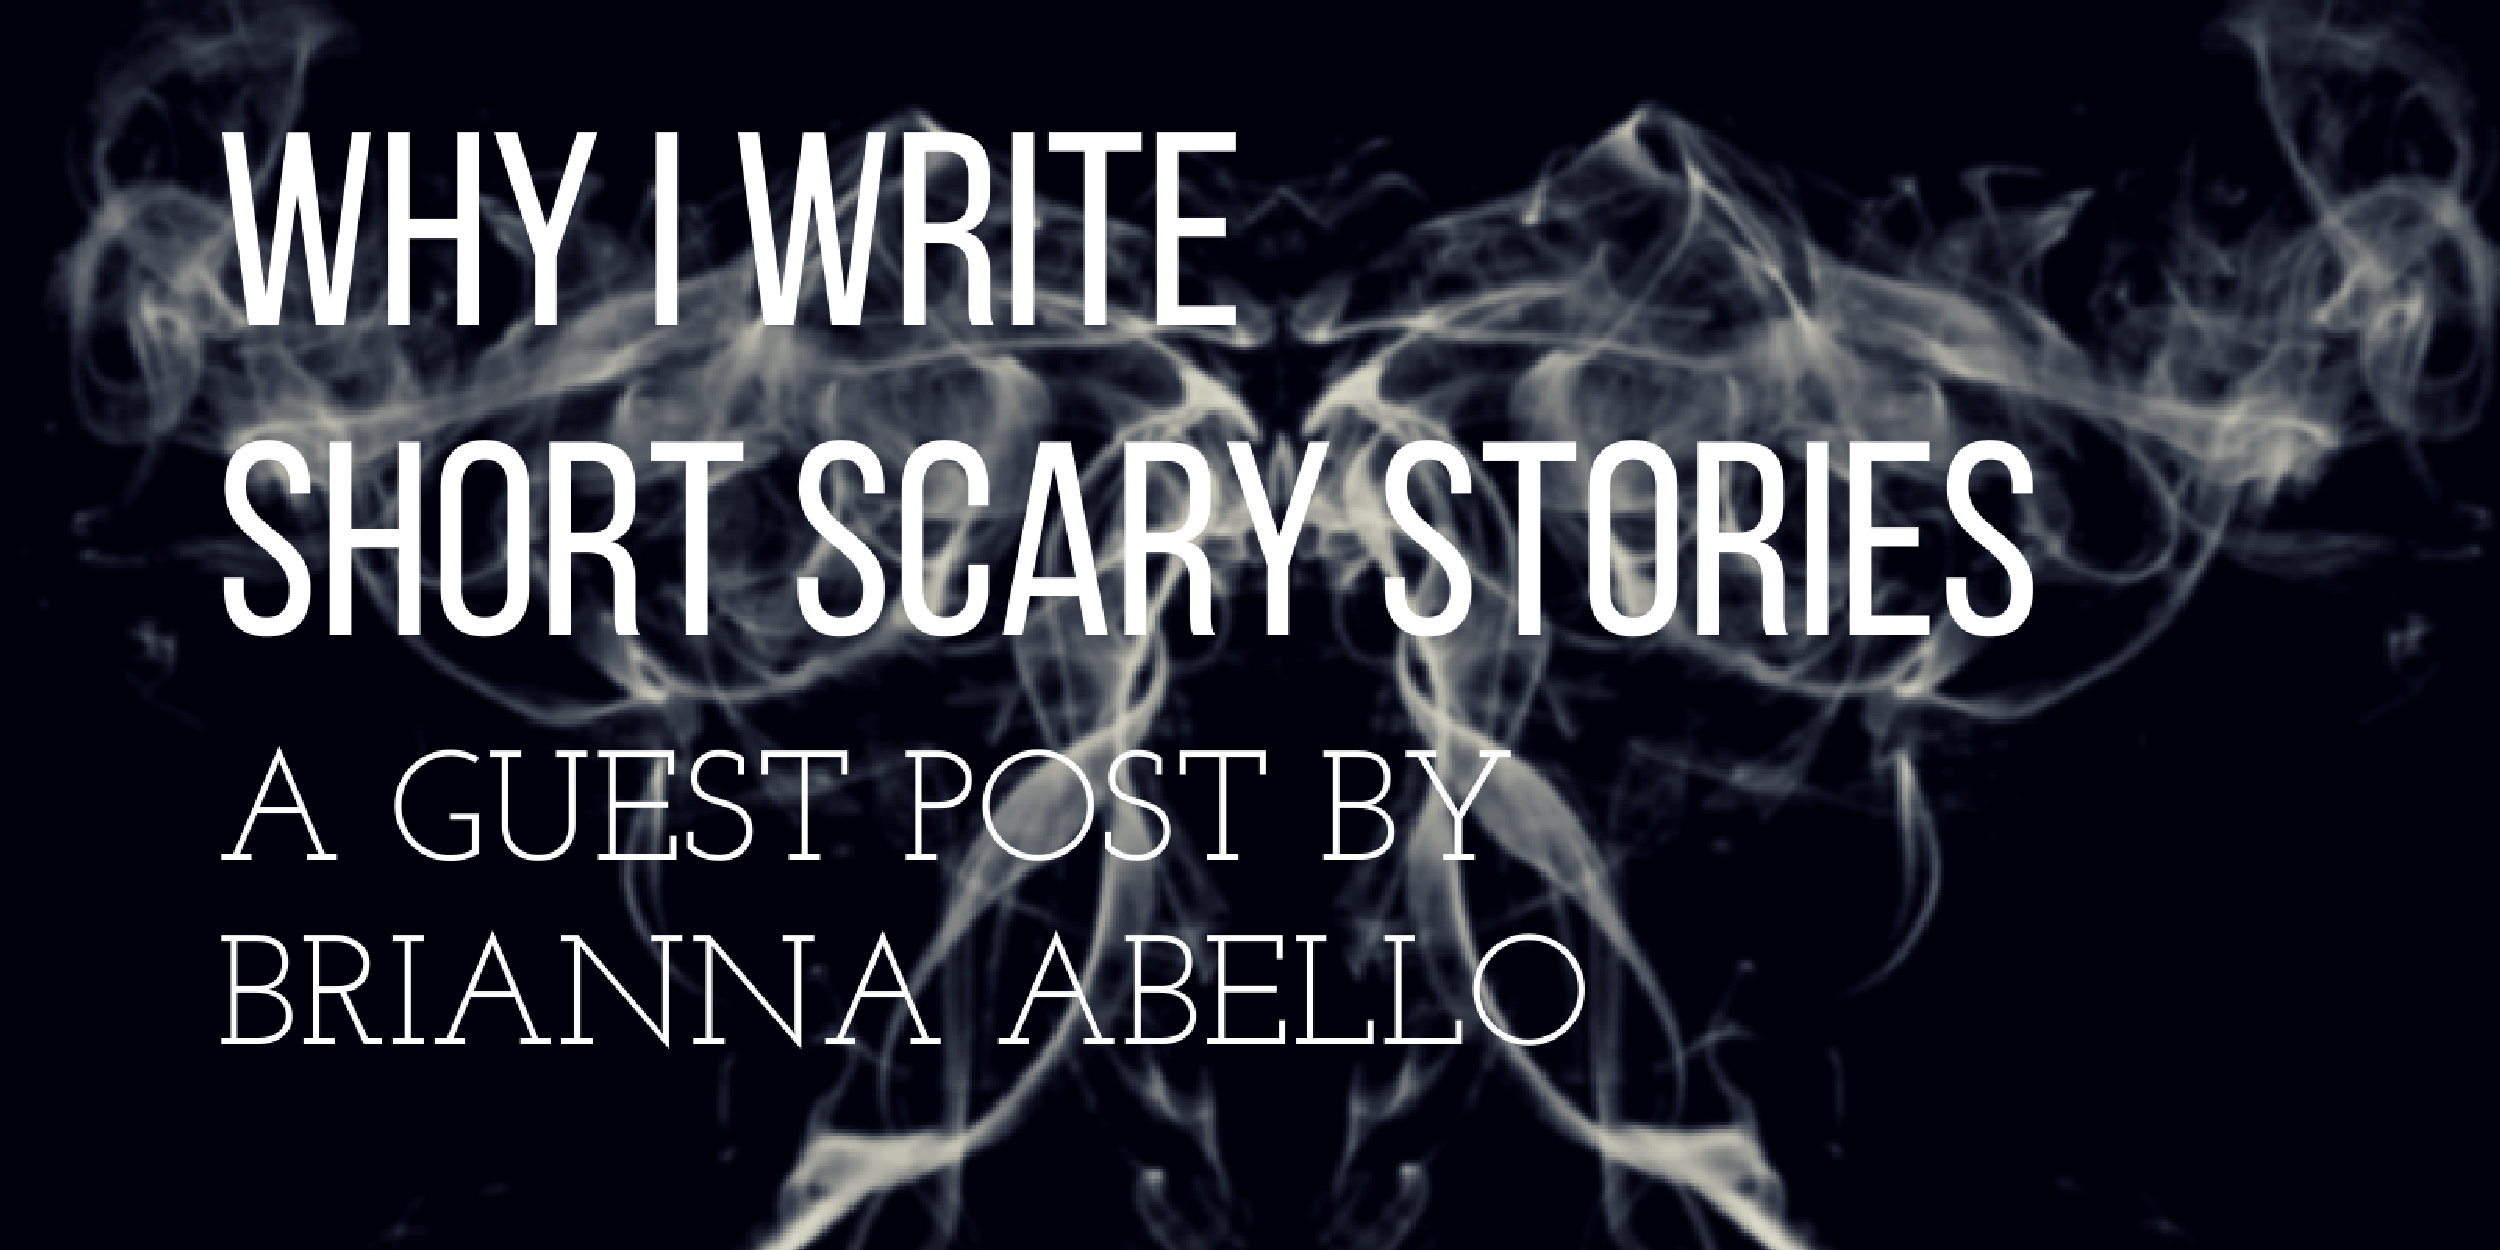 Why I Write Short Scary Stories by Brianna Abello – Short Story and